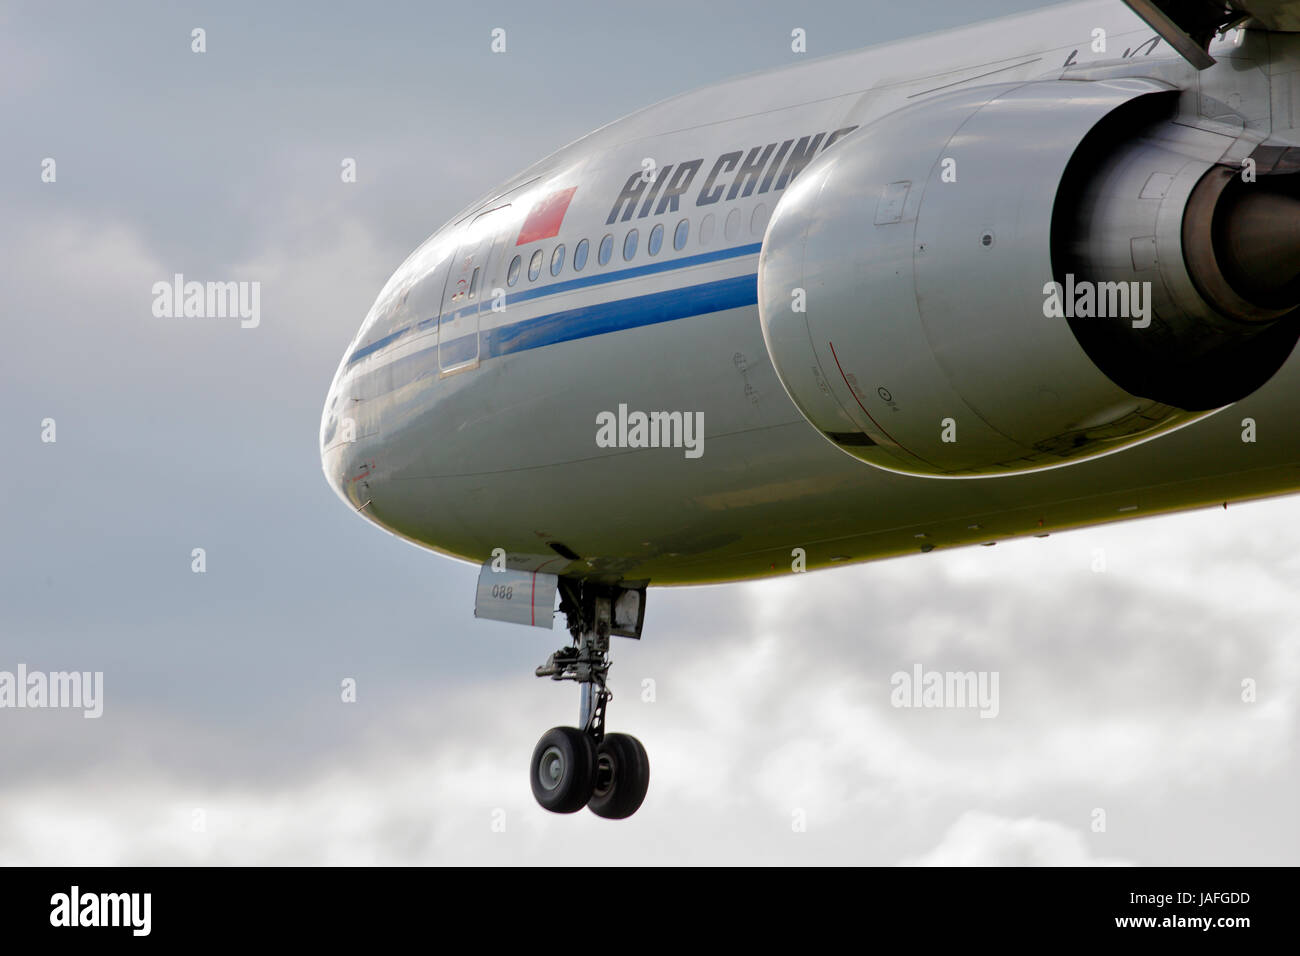 B-2088 Air China Boeing 777-300 cn-38668/979 tight shot of nose and engine, on approach to London Heathrow airport - Stock Image